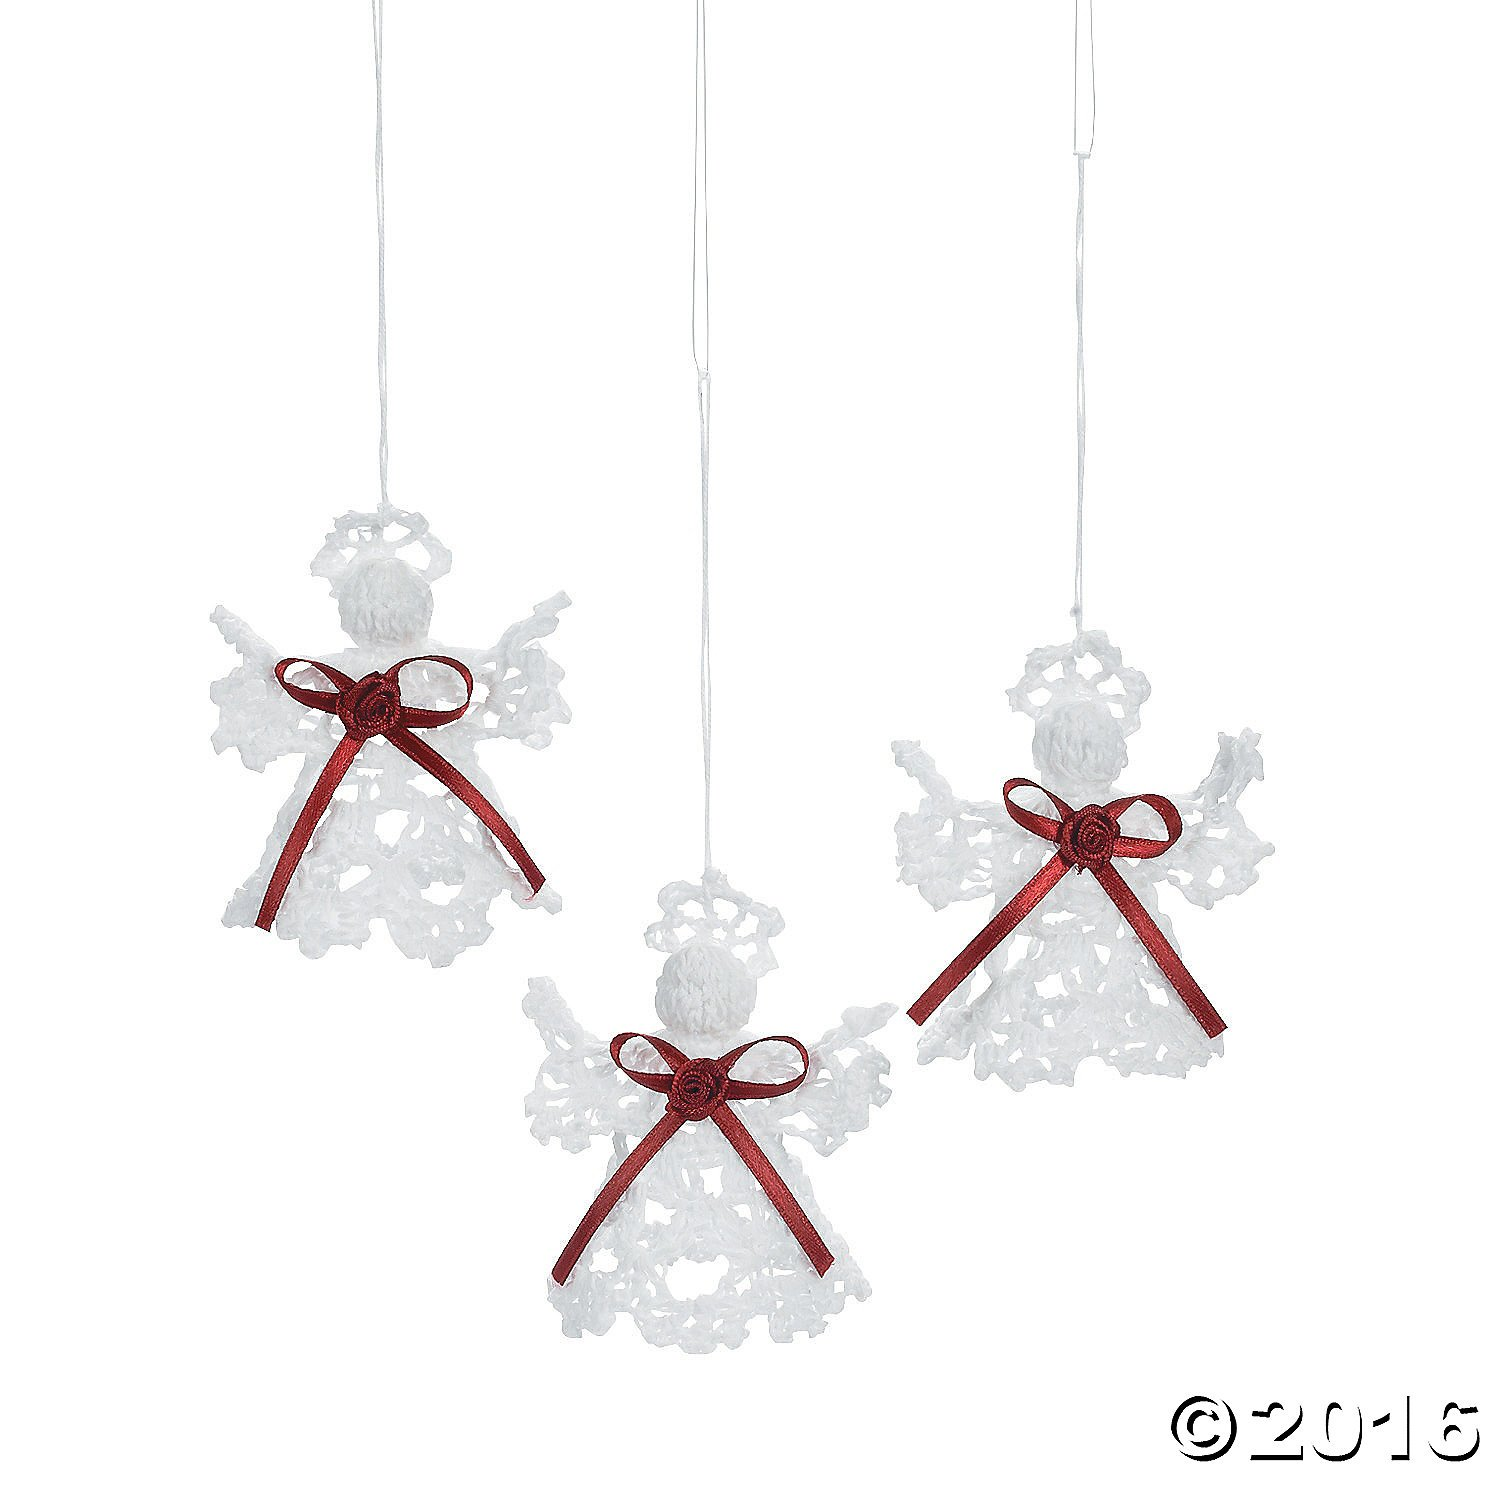 amazoncom victorian crocheted angel christmas ornaments set of 12 home kitchen - Crochet Angel Christmas Tree Decorations